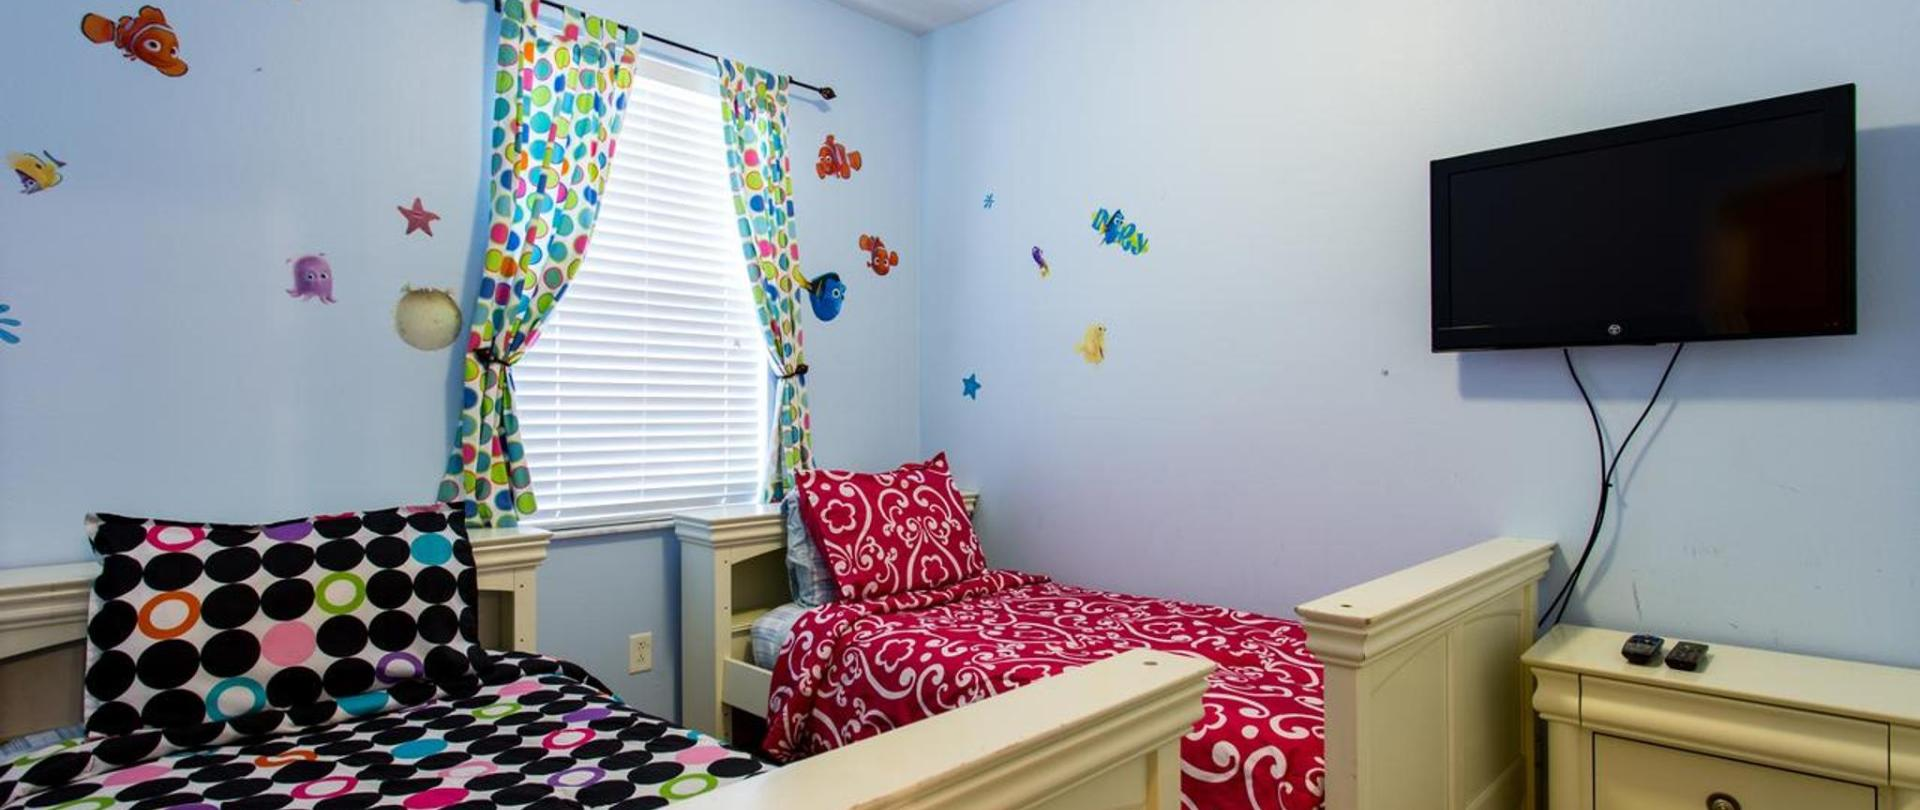 Disney Area Vacation Rental por My Orlando Stay, LLC